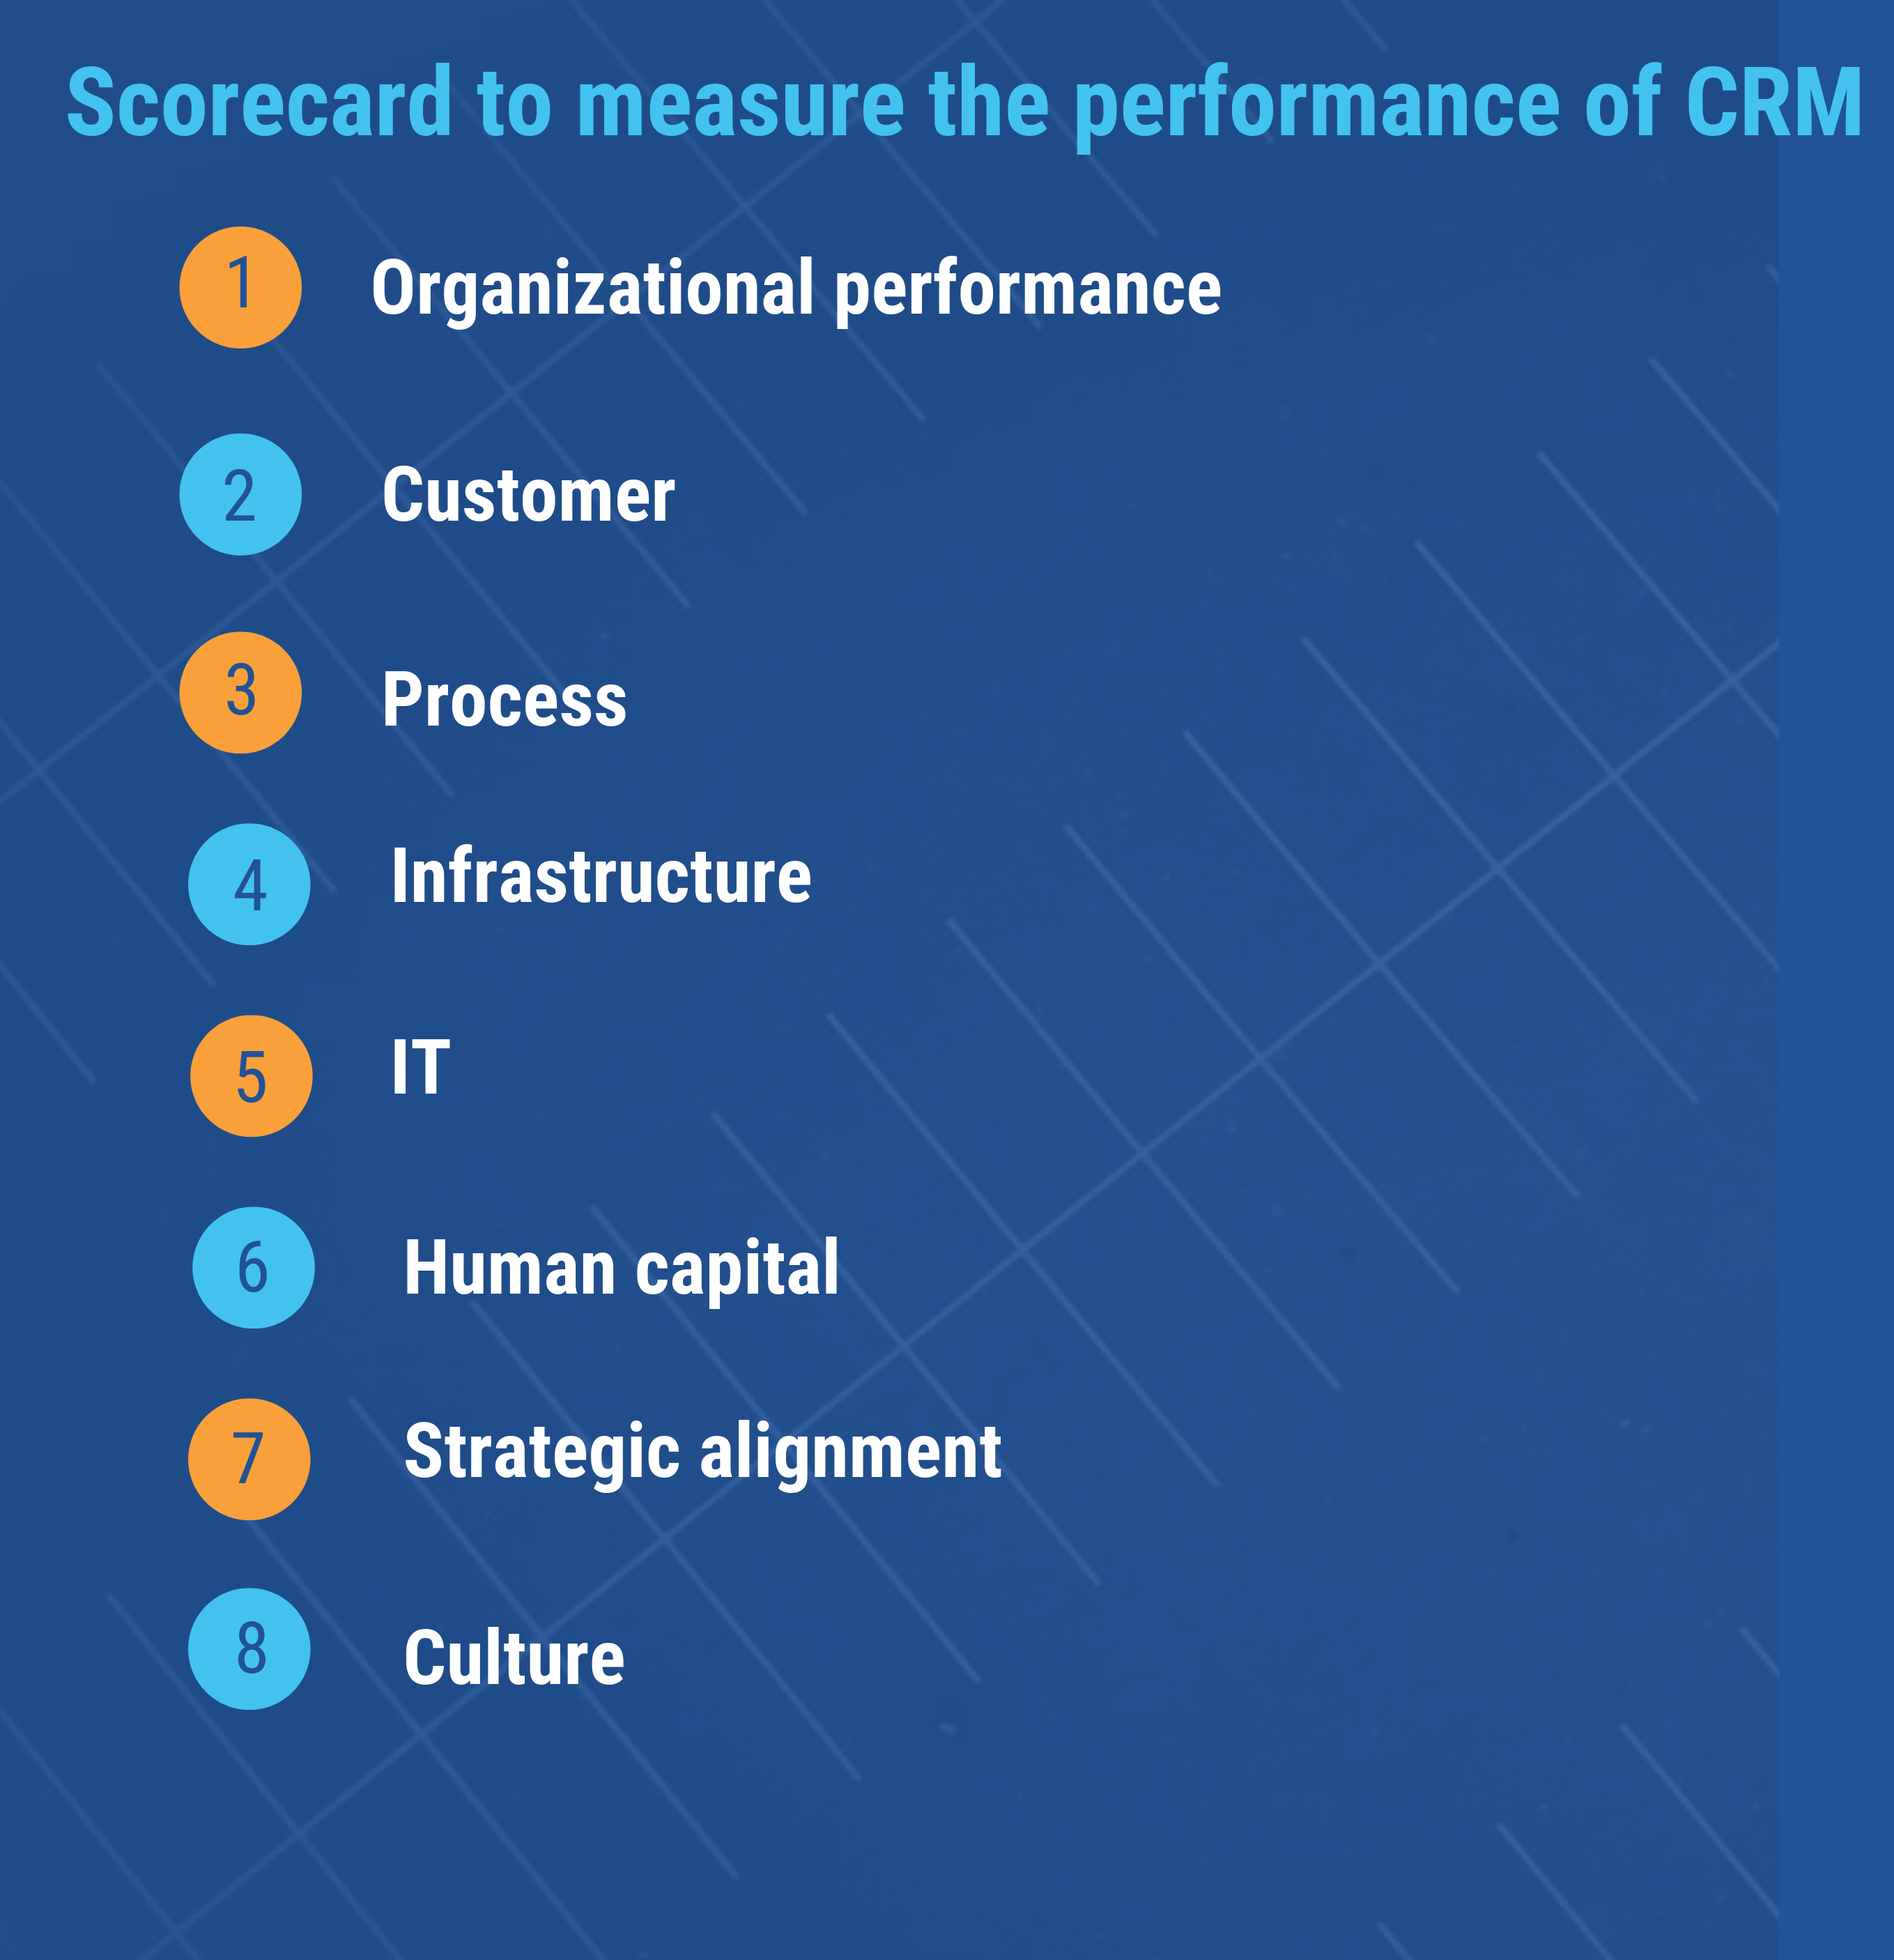 Scorecard to measure the performance of CRM